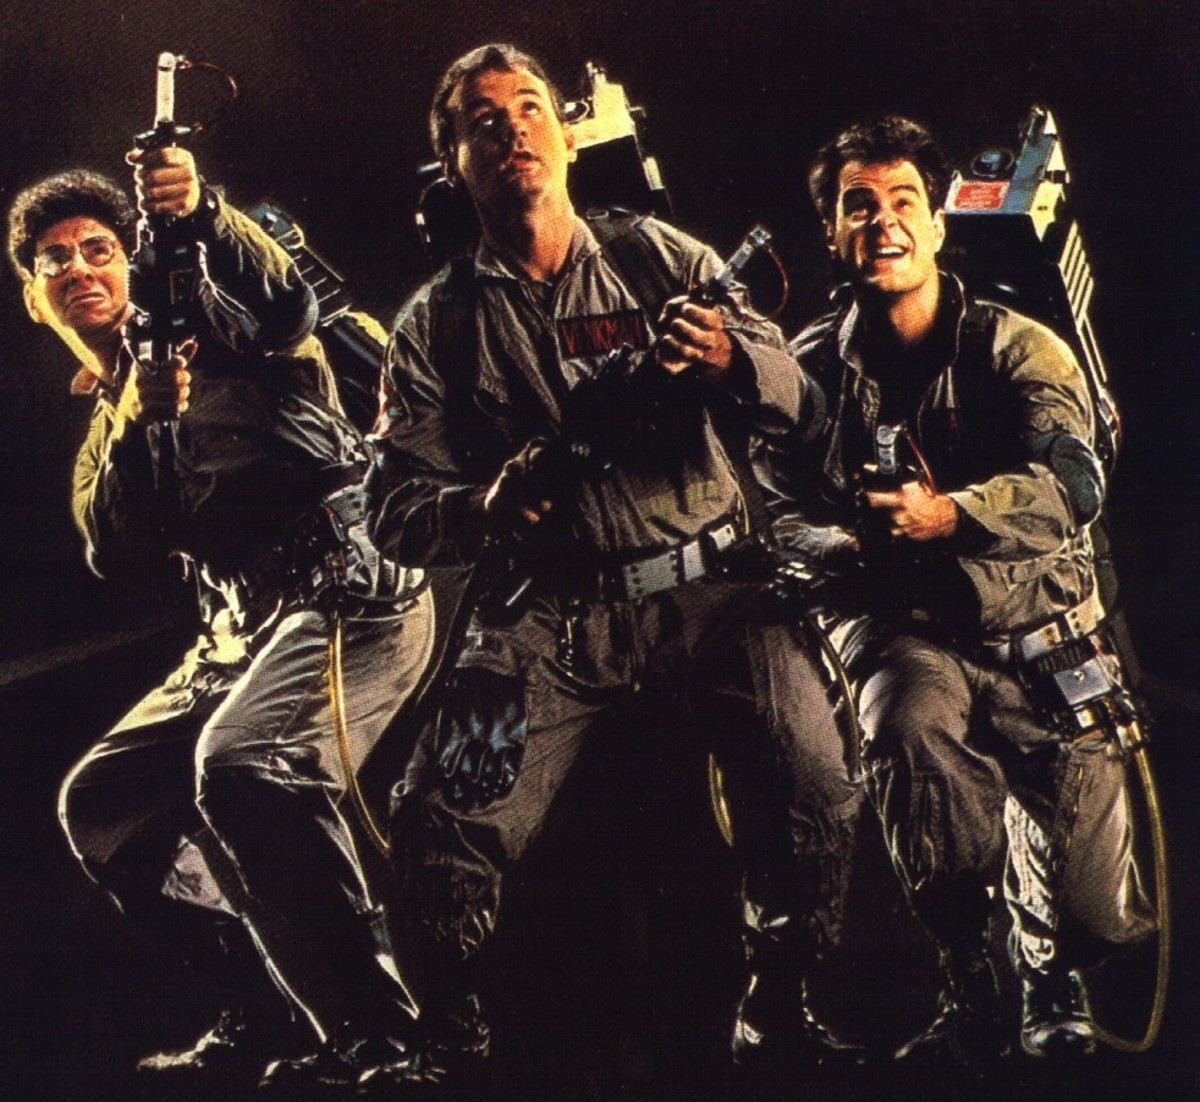 Harold Ramis, Bill Murray and Dan Aykroyd as Ghostbusters